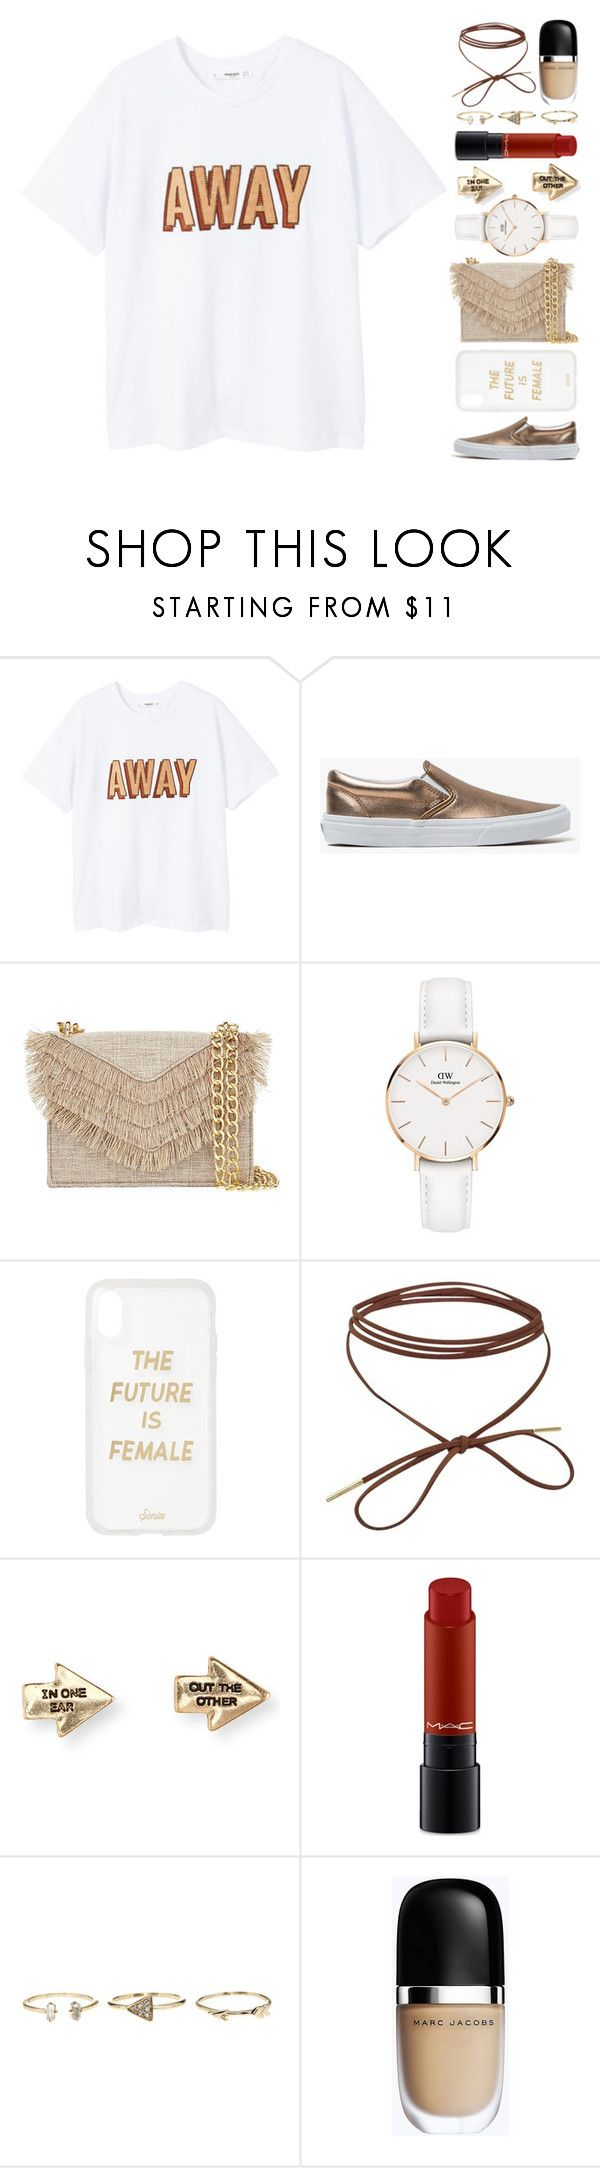 """""""22 février"""" by elyblog ❤ liked on Polyvore featuring MANGO, Vans, Cynthia Rowley, Daniel Wellington, Sonix, Aéropostale, MAC Cosmetics and Marc Jacobs"""